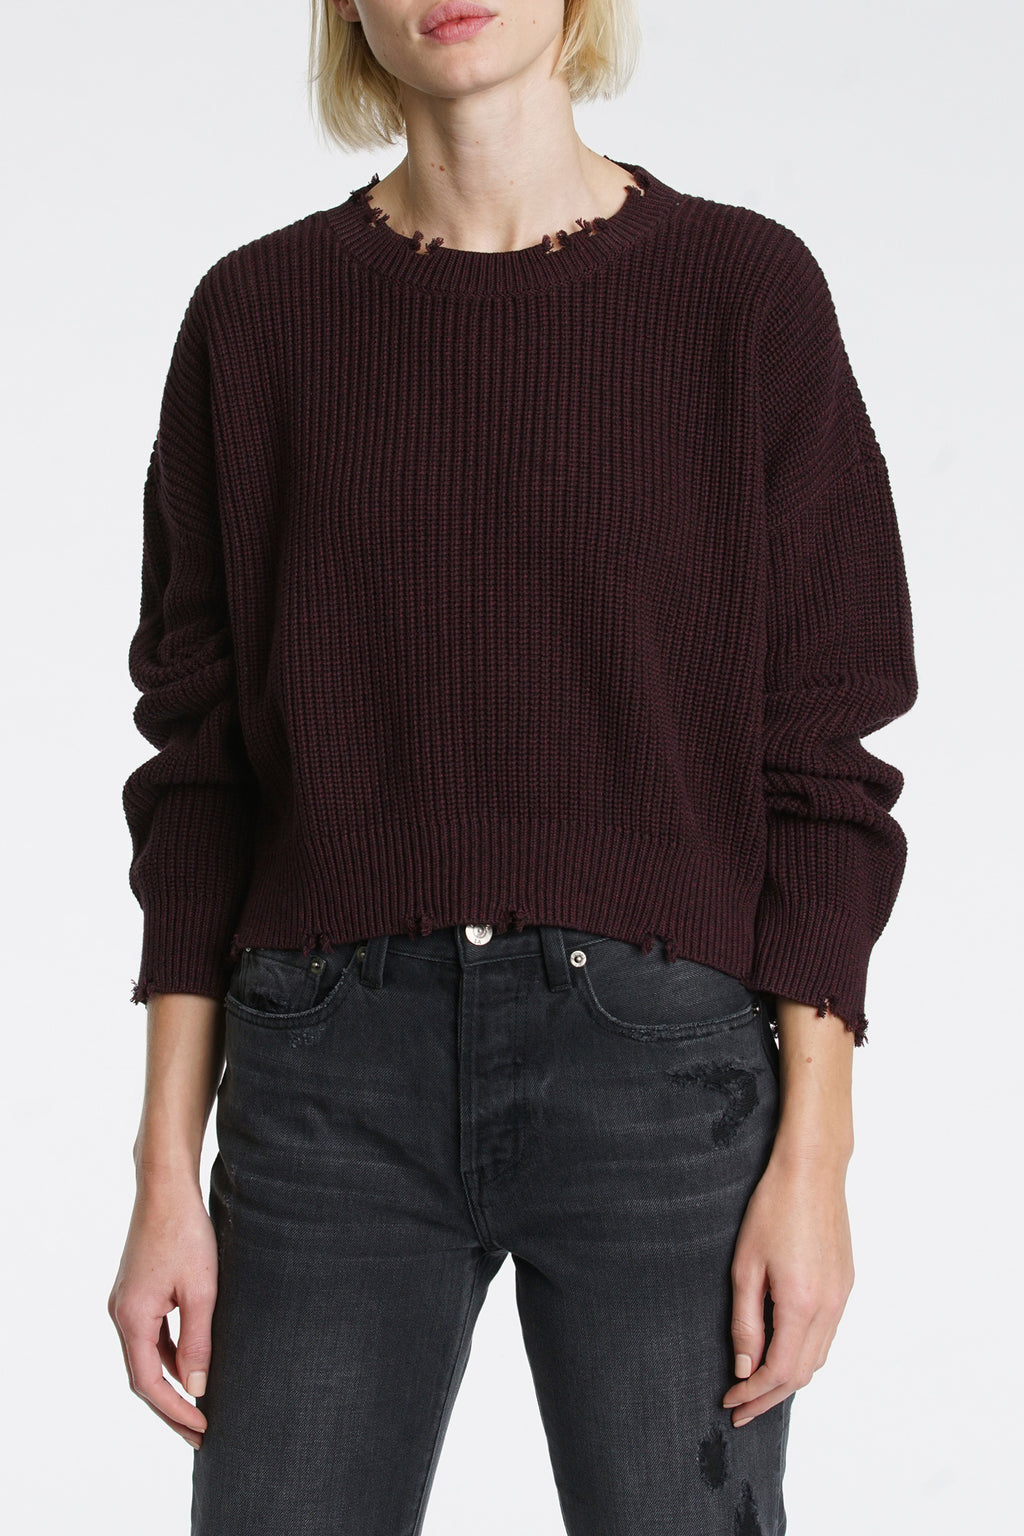 Eva Cropped Sweater - Black Cherry